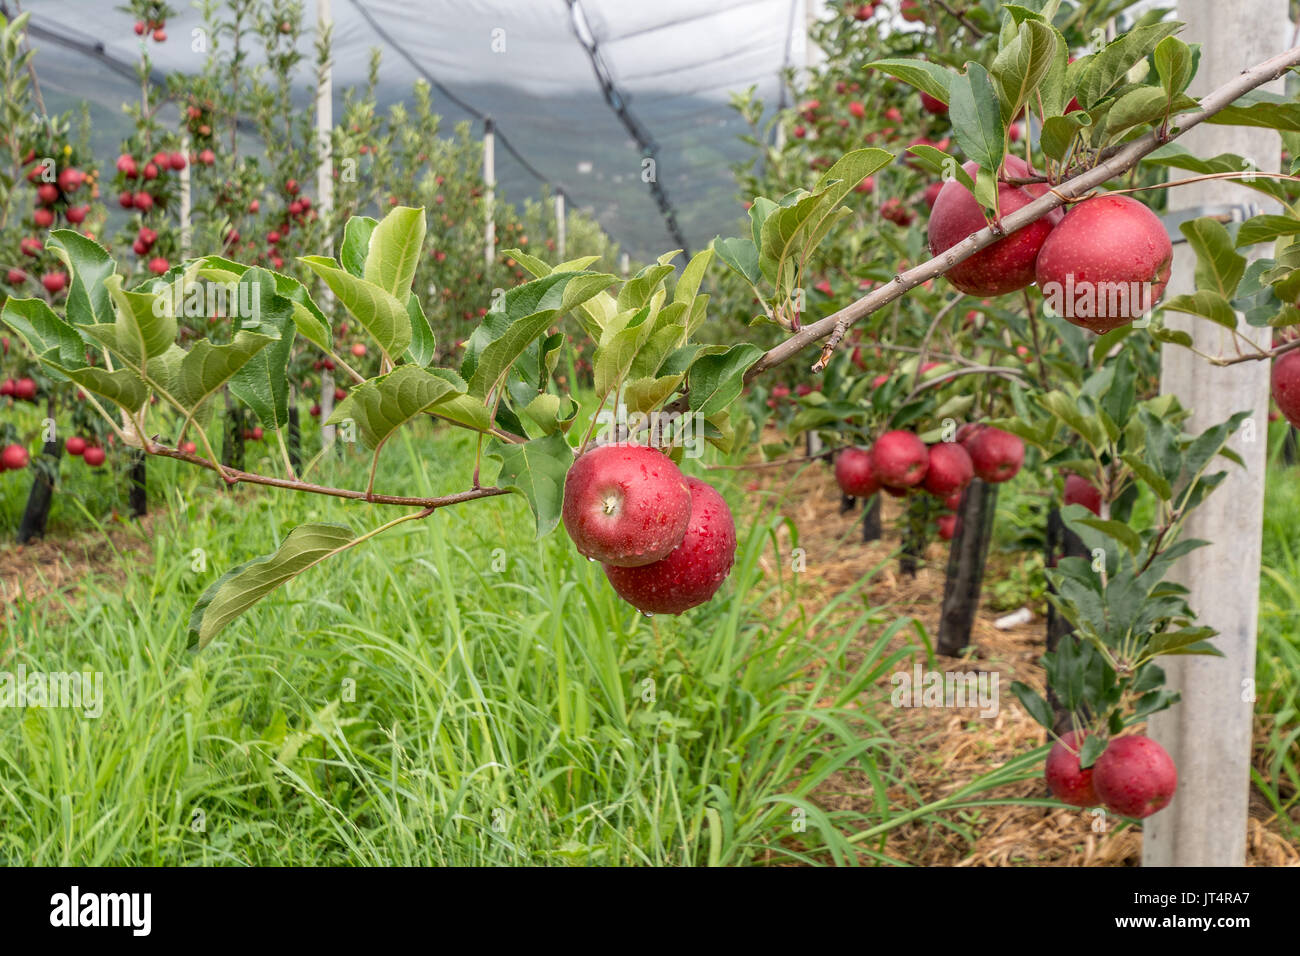 Apples hanging from a tree branch in an apple orchard of South Tyrol countryside, italy. - Stock Image